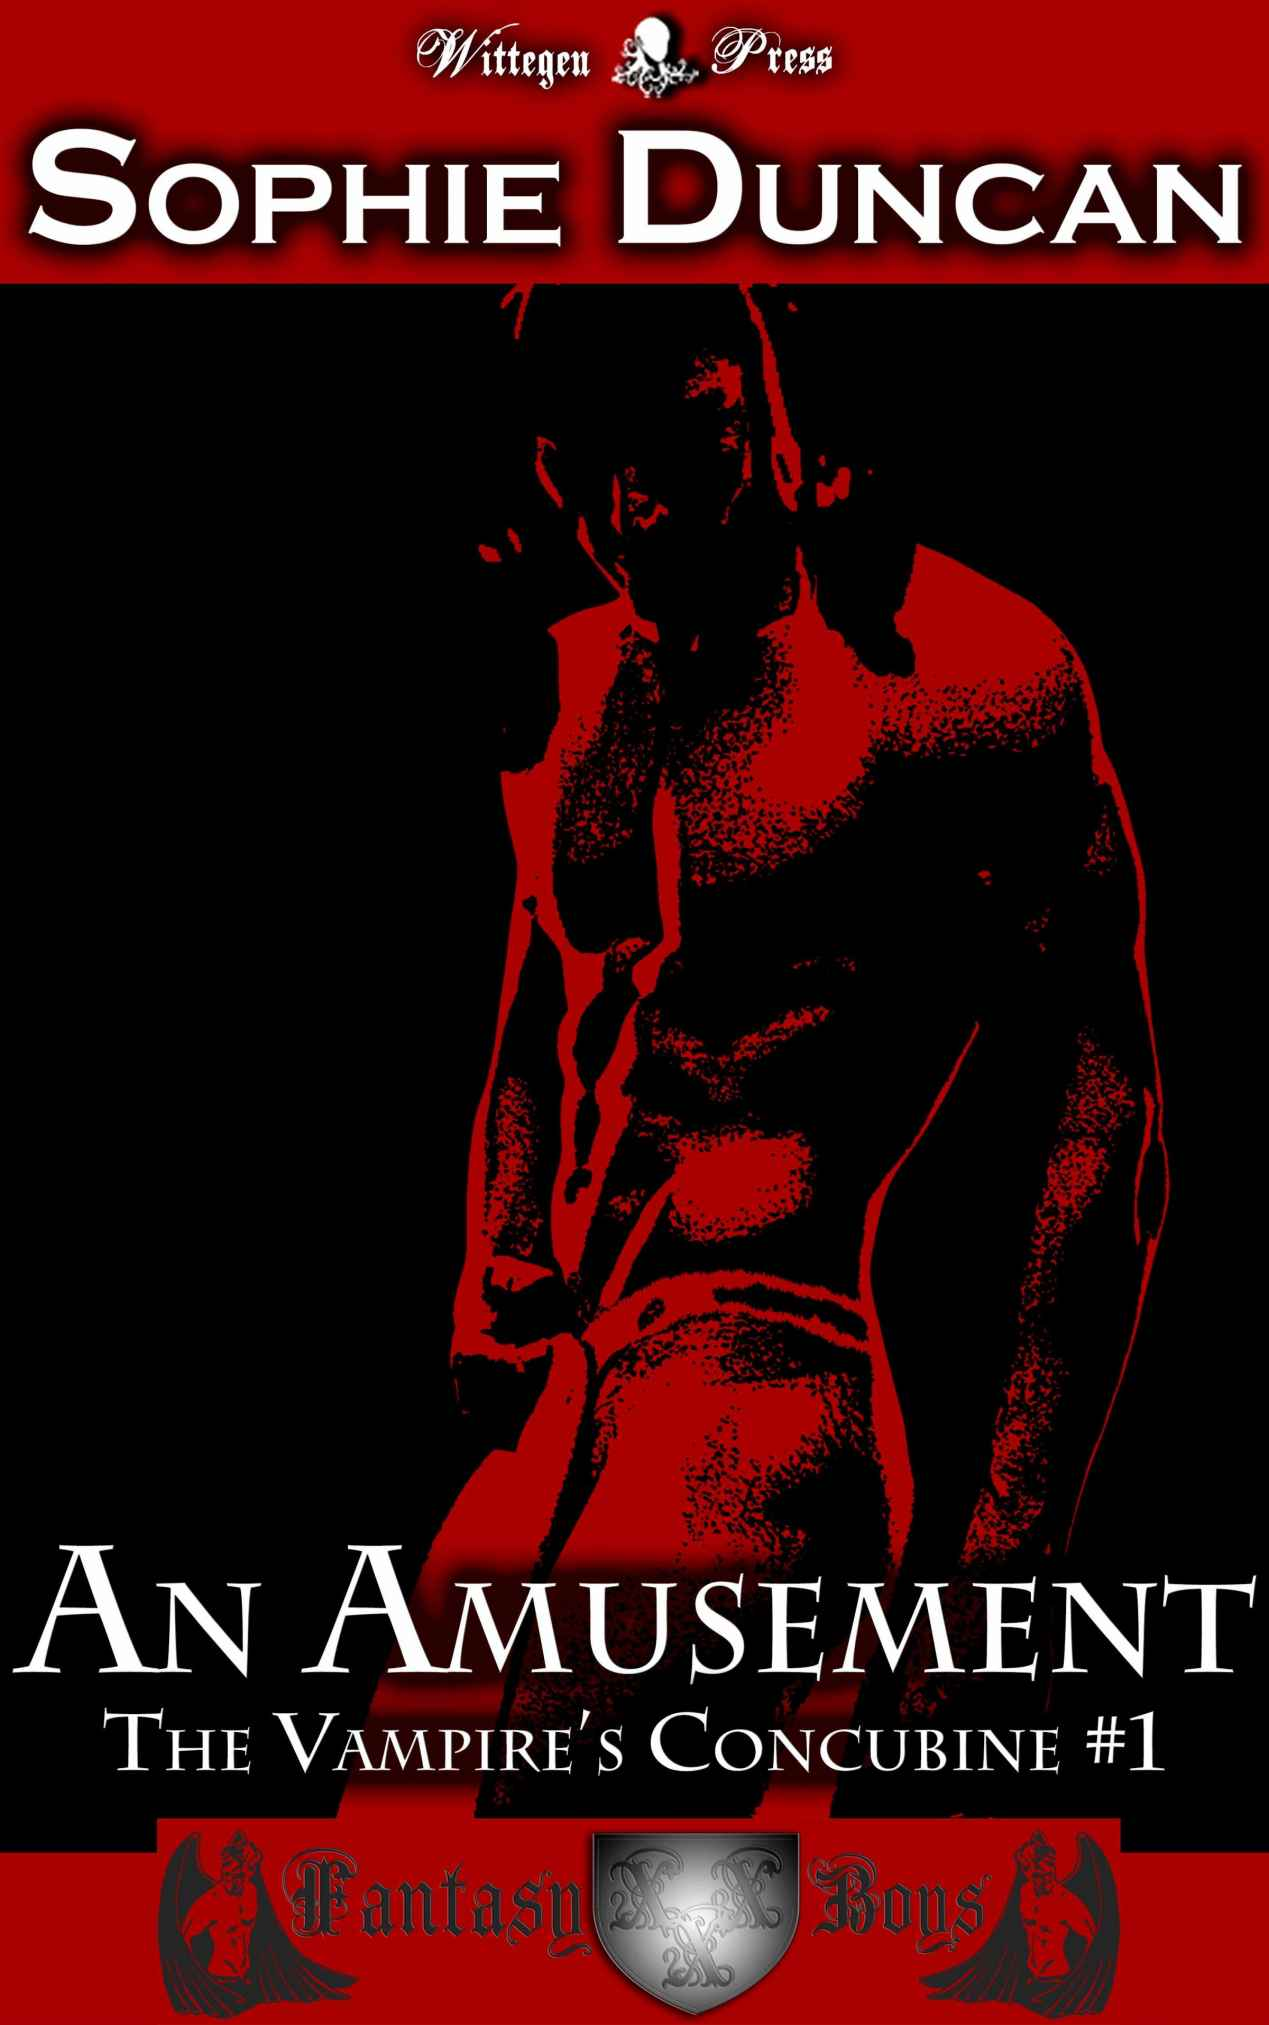 An Amusement (The Vampire's Concubine #1) by Sophie Duncan